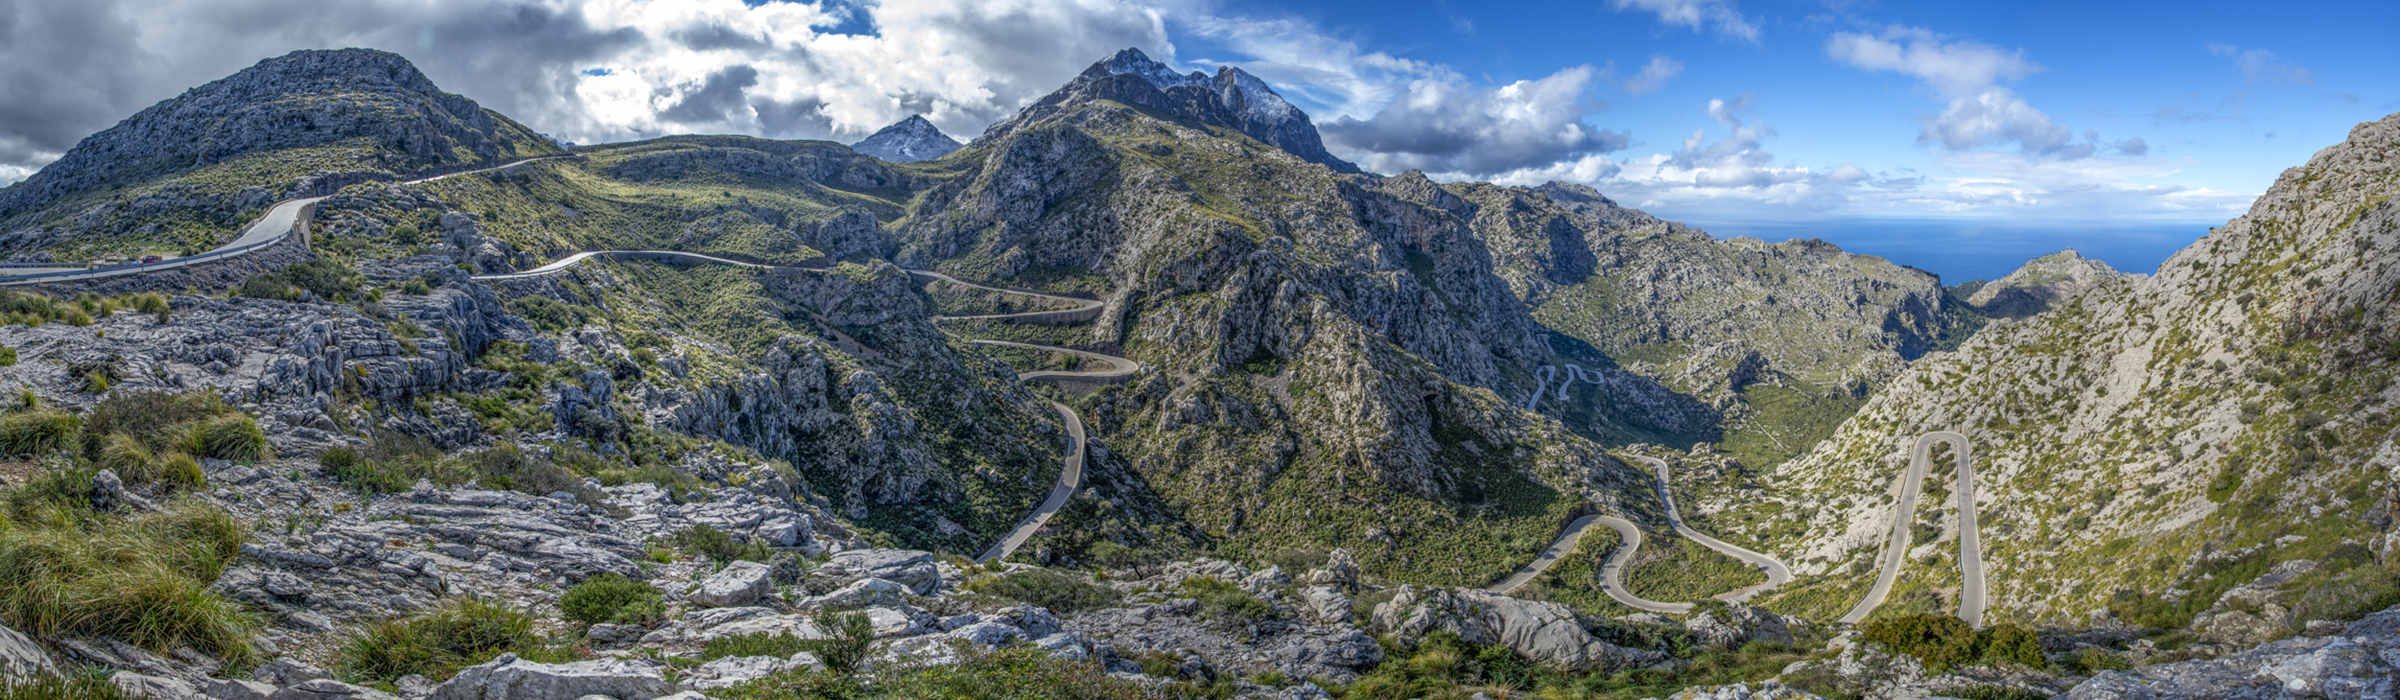 Berglandschaft in Mallorca